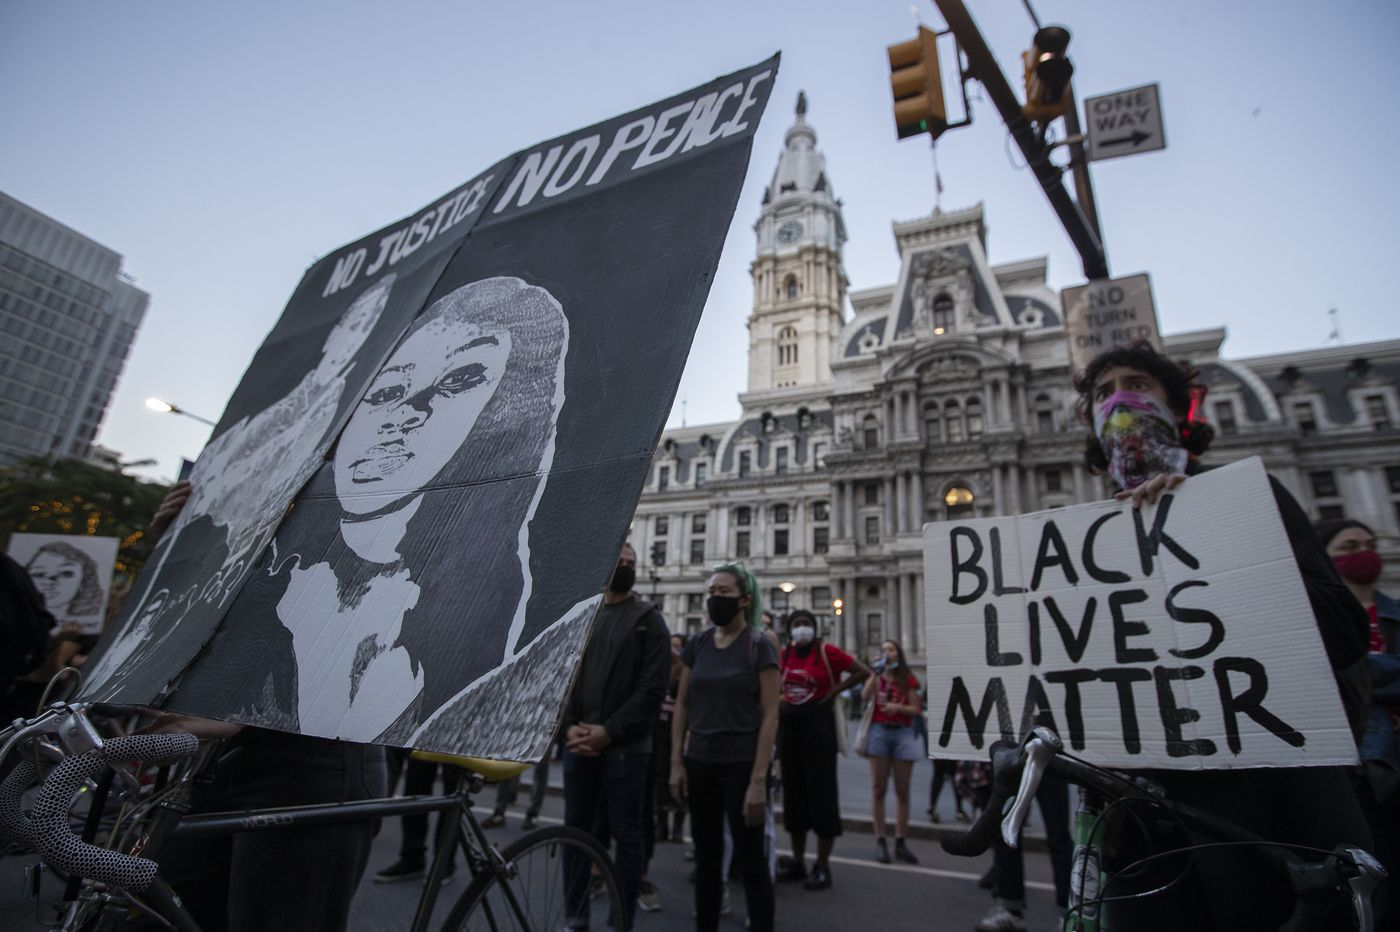 Protesters march through Philadelphia in the wake of the grand jury ruling in Breonna Taylor's death